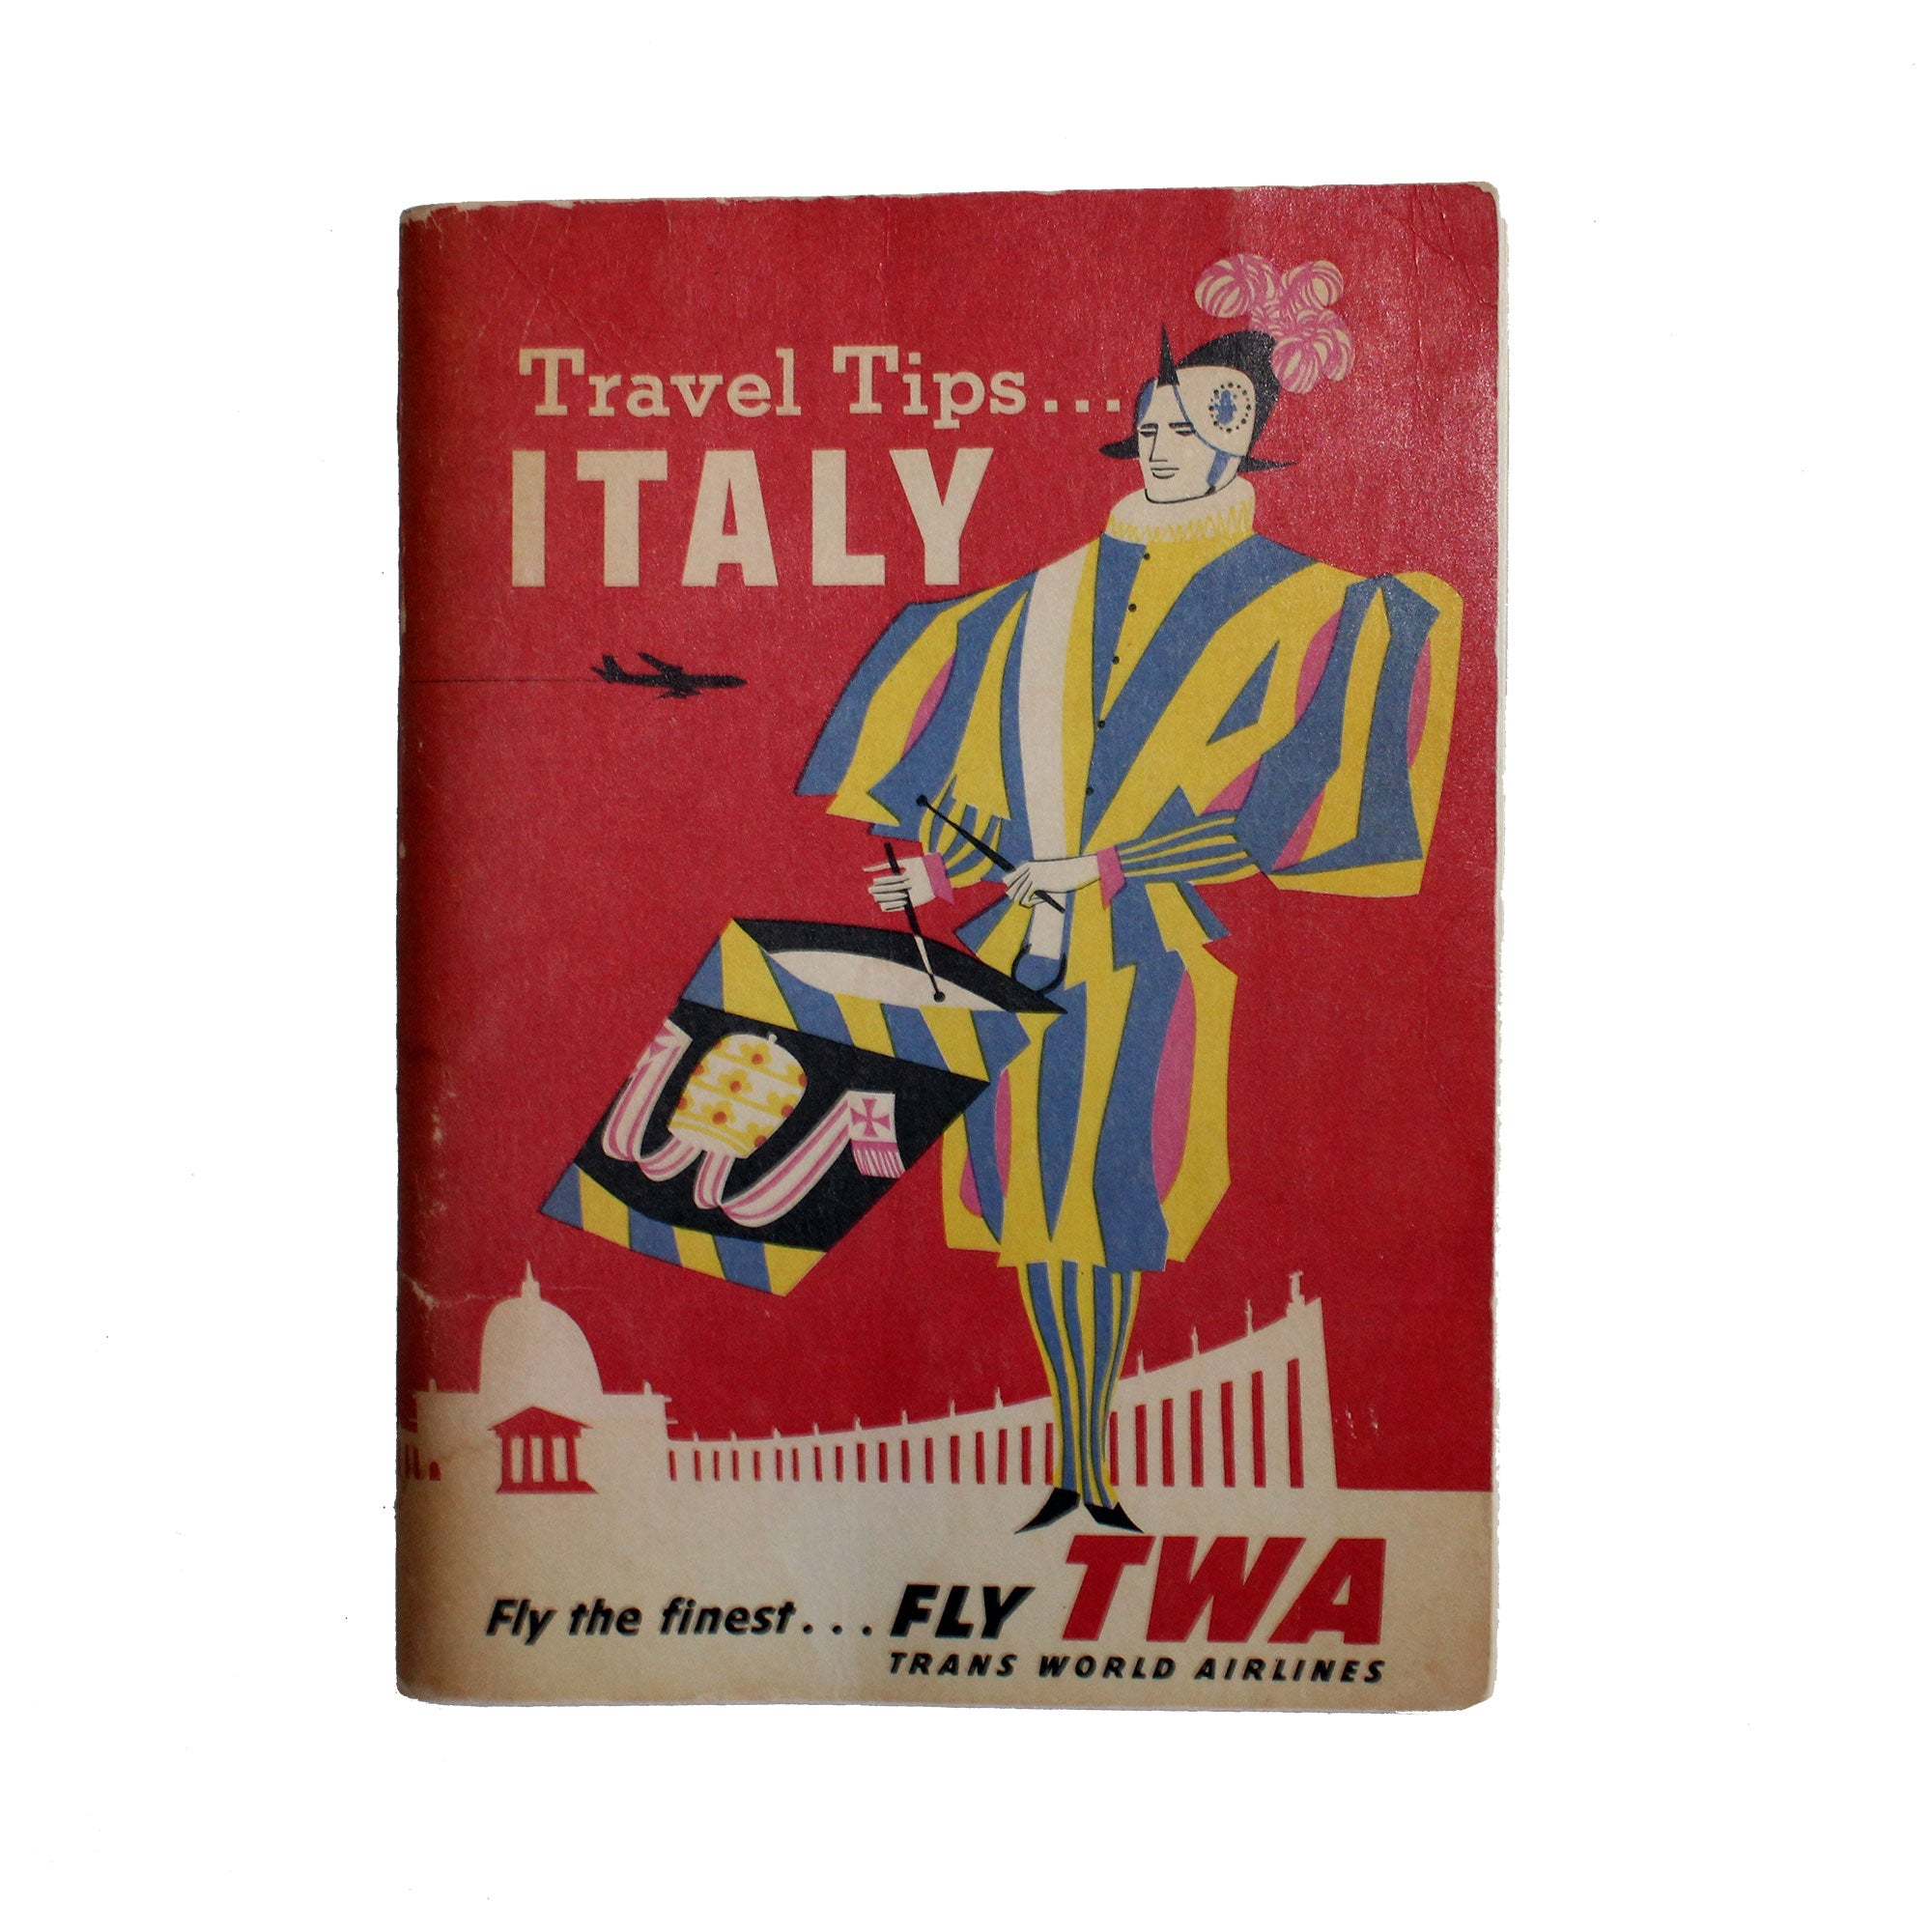 Travel Tips...Italy by TWA, 1960